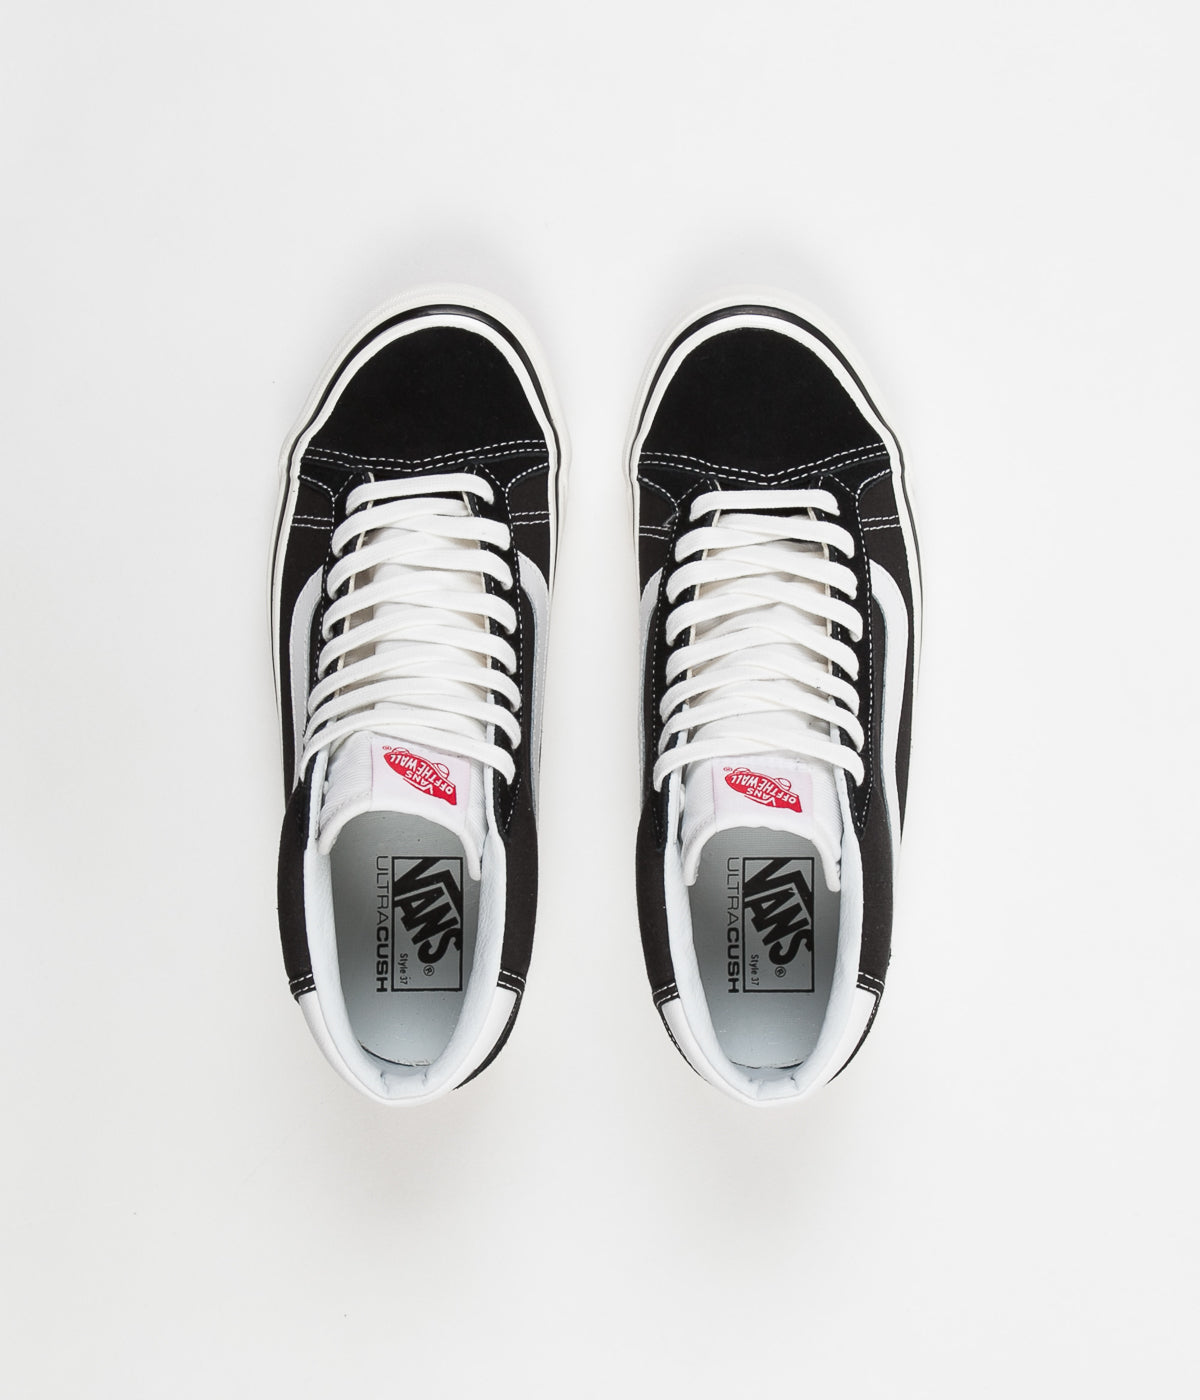 6050469b6ce6e8 Vans Mid Skool 37 DX Anaheim Factory Shoes - Black   White ...